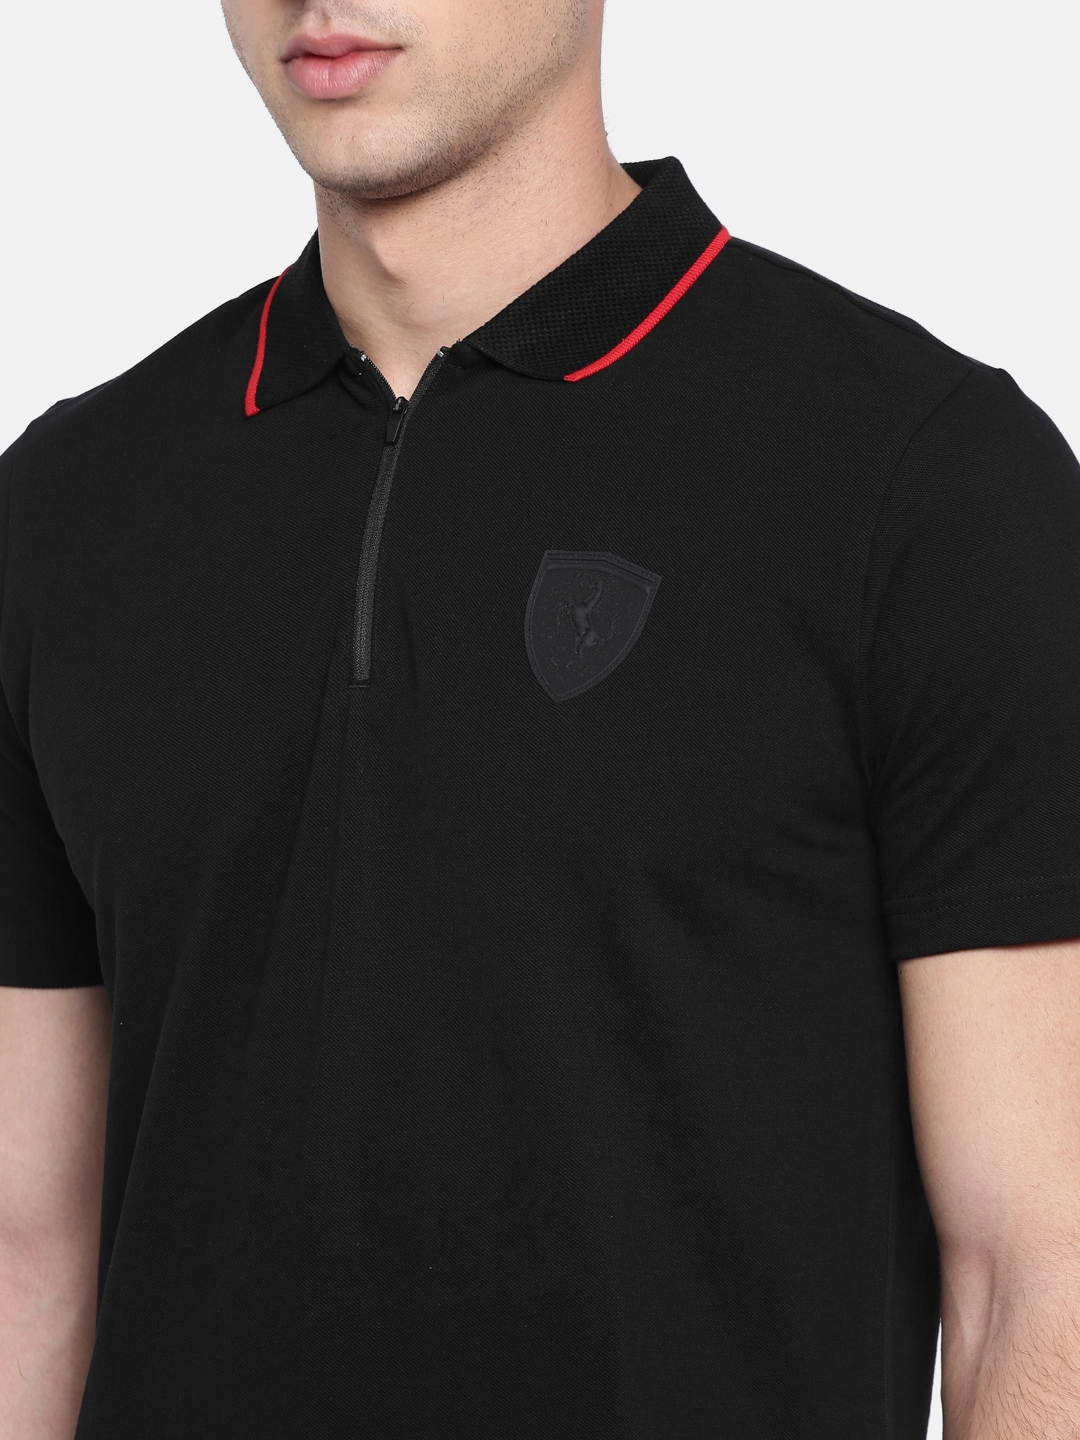 e3d330f8876 Buy Puma Men Black Solid Ferrari Polo T Shirt - Tshirts for Men ...